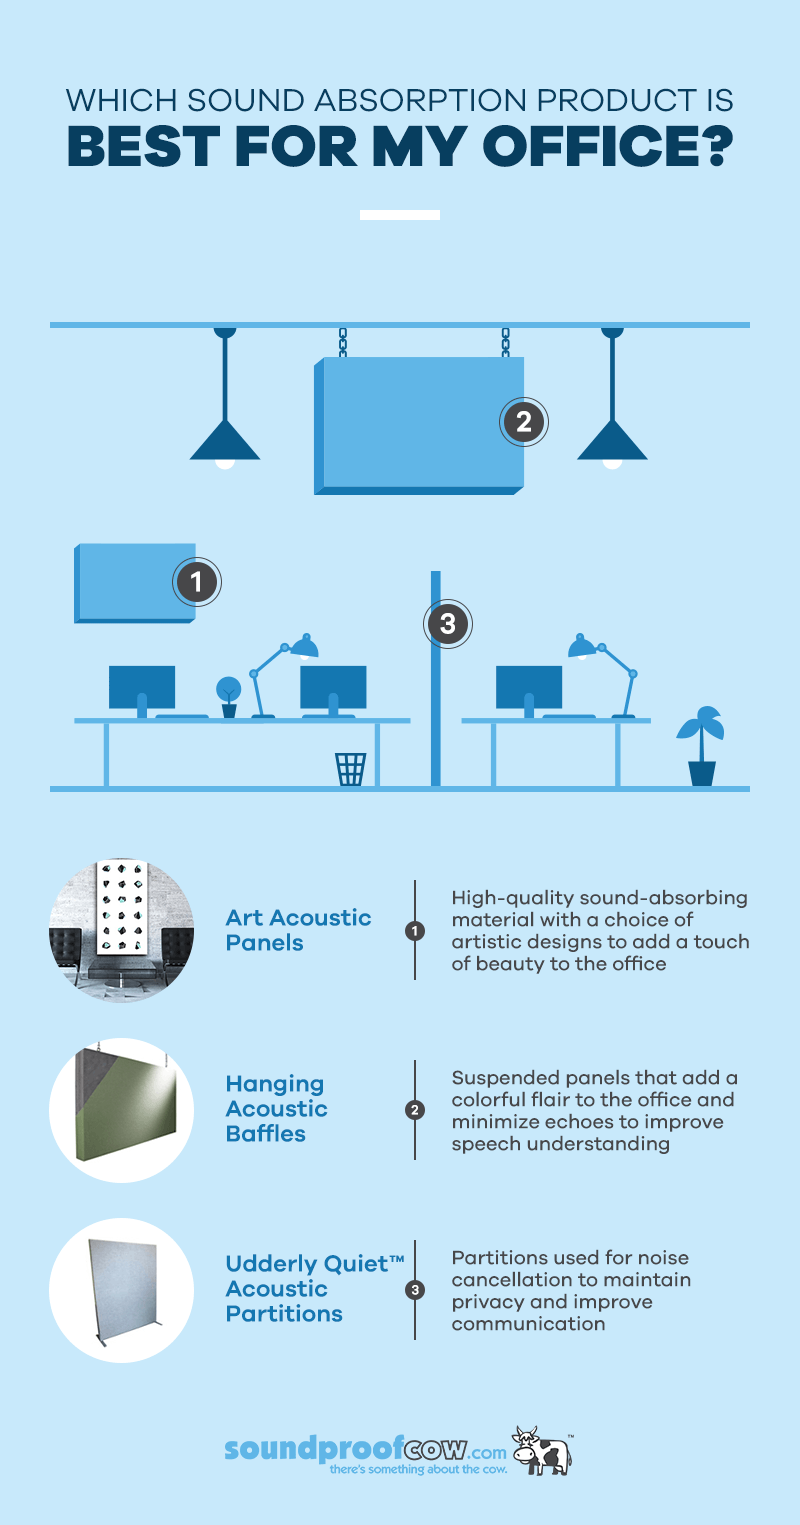 Which sound absorption product is best for my office